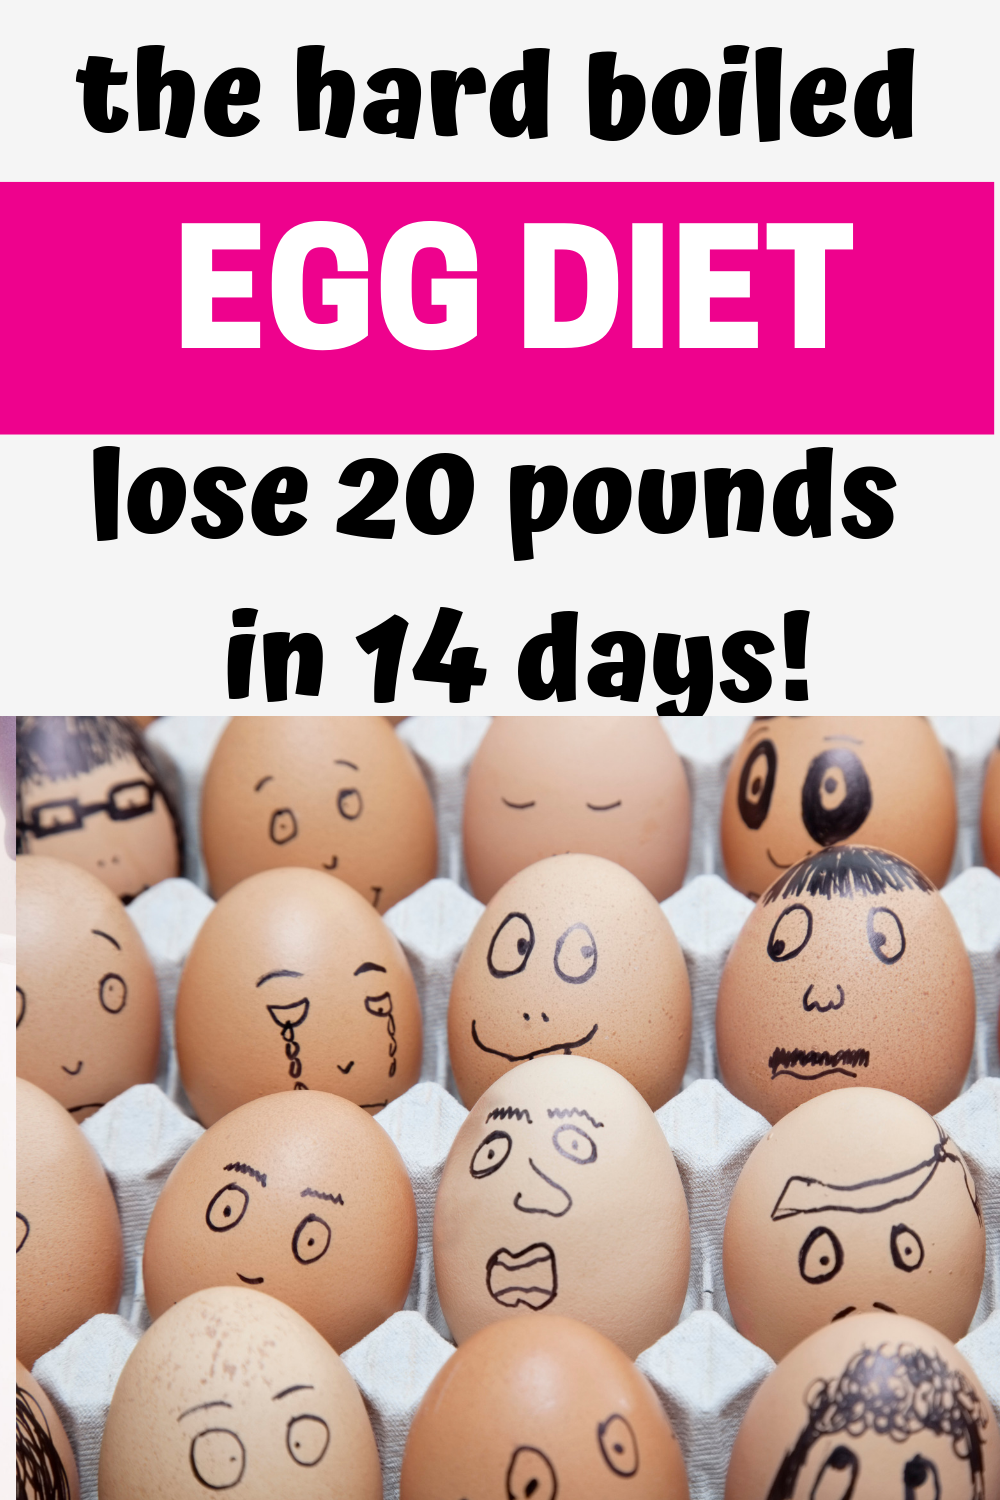 boiled egg diet, lose 20lbs in 2 weeks, lose 20 pounds in 14 days, lose fat no exercise